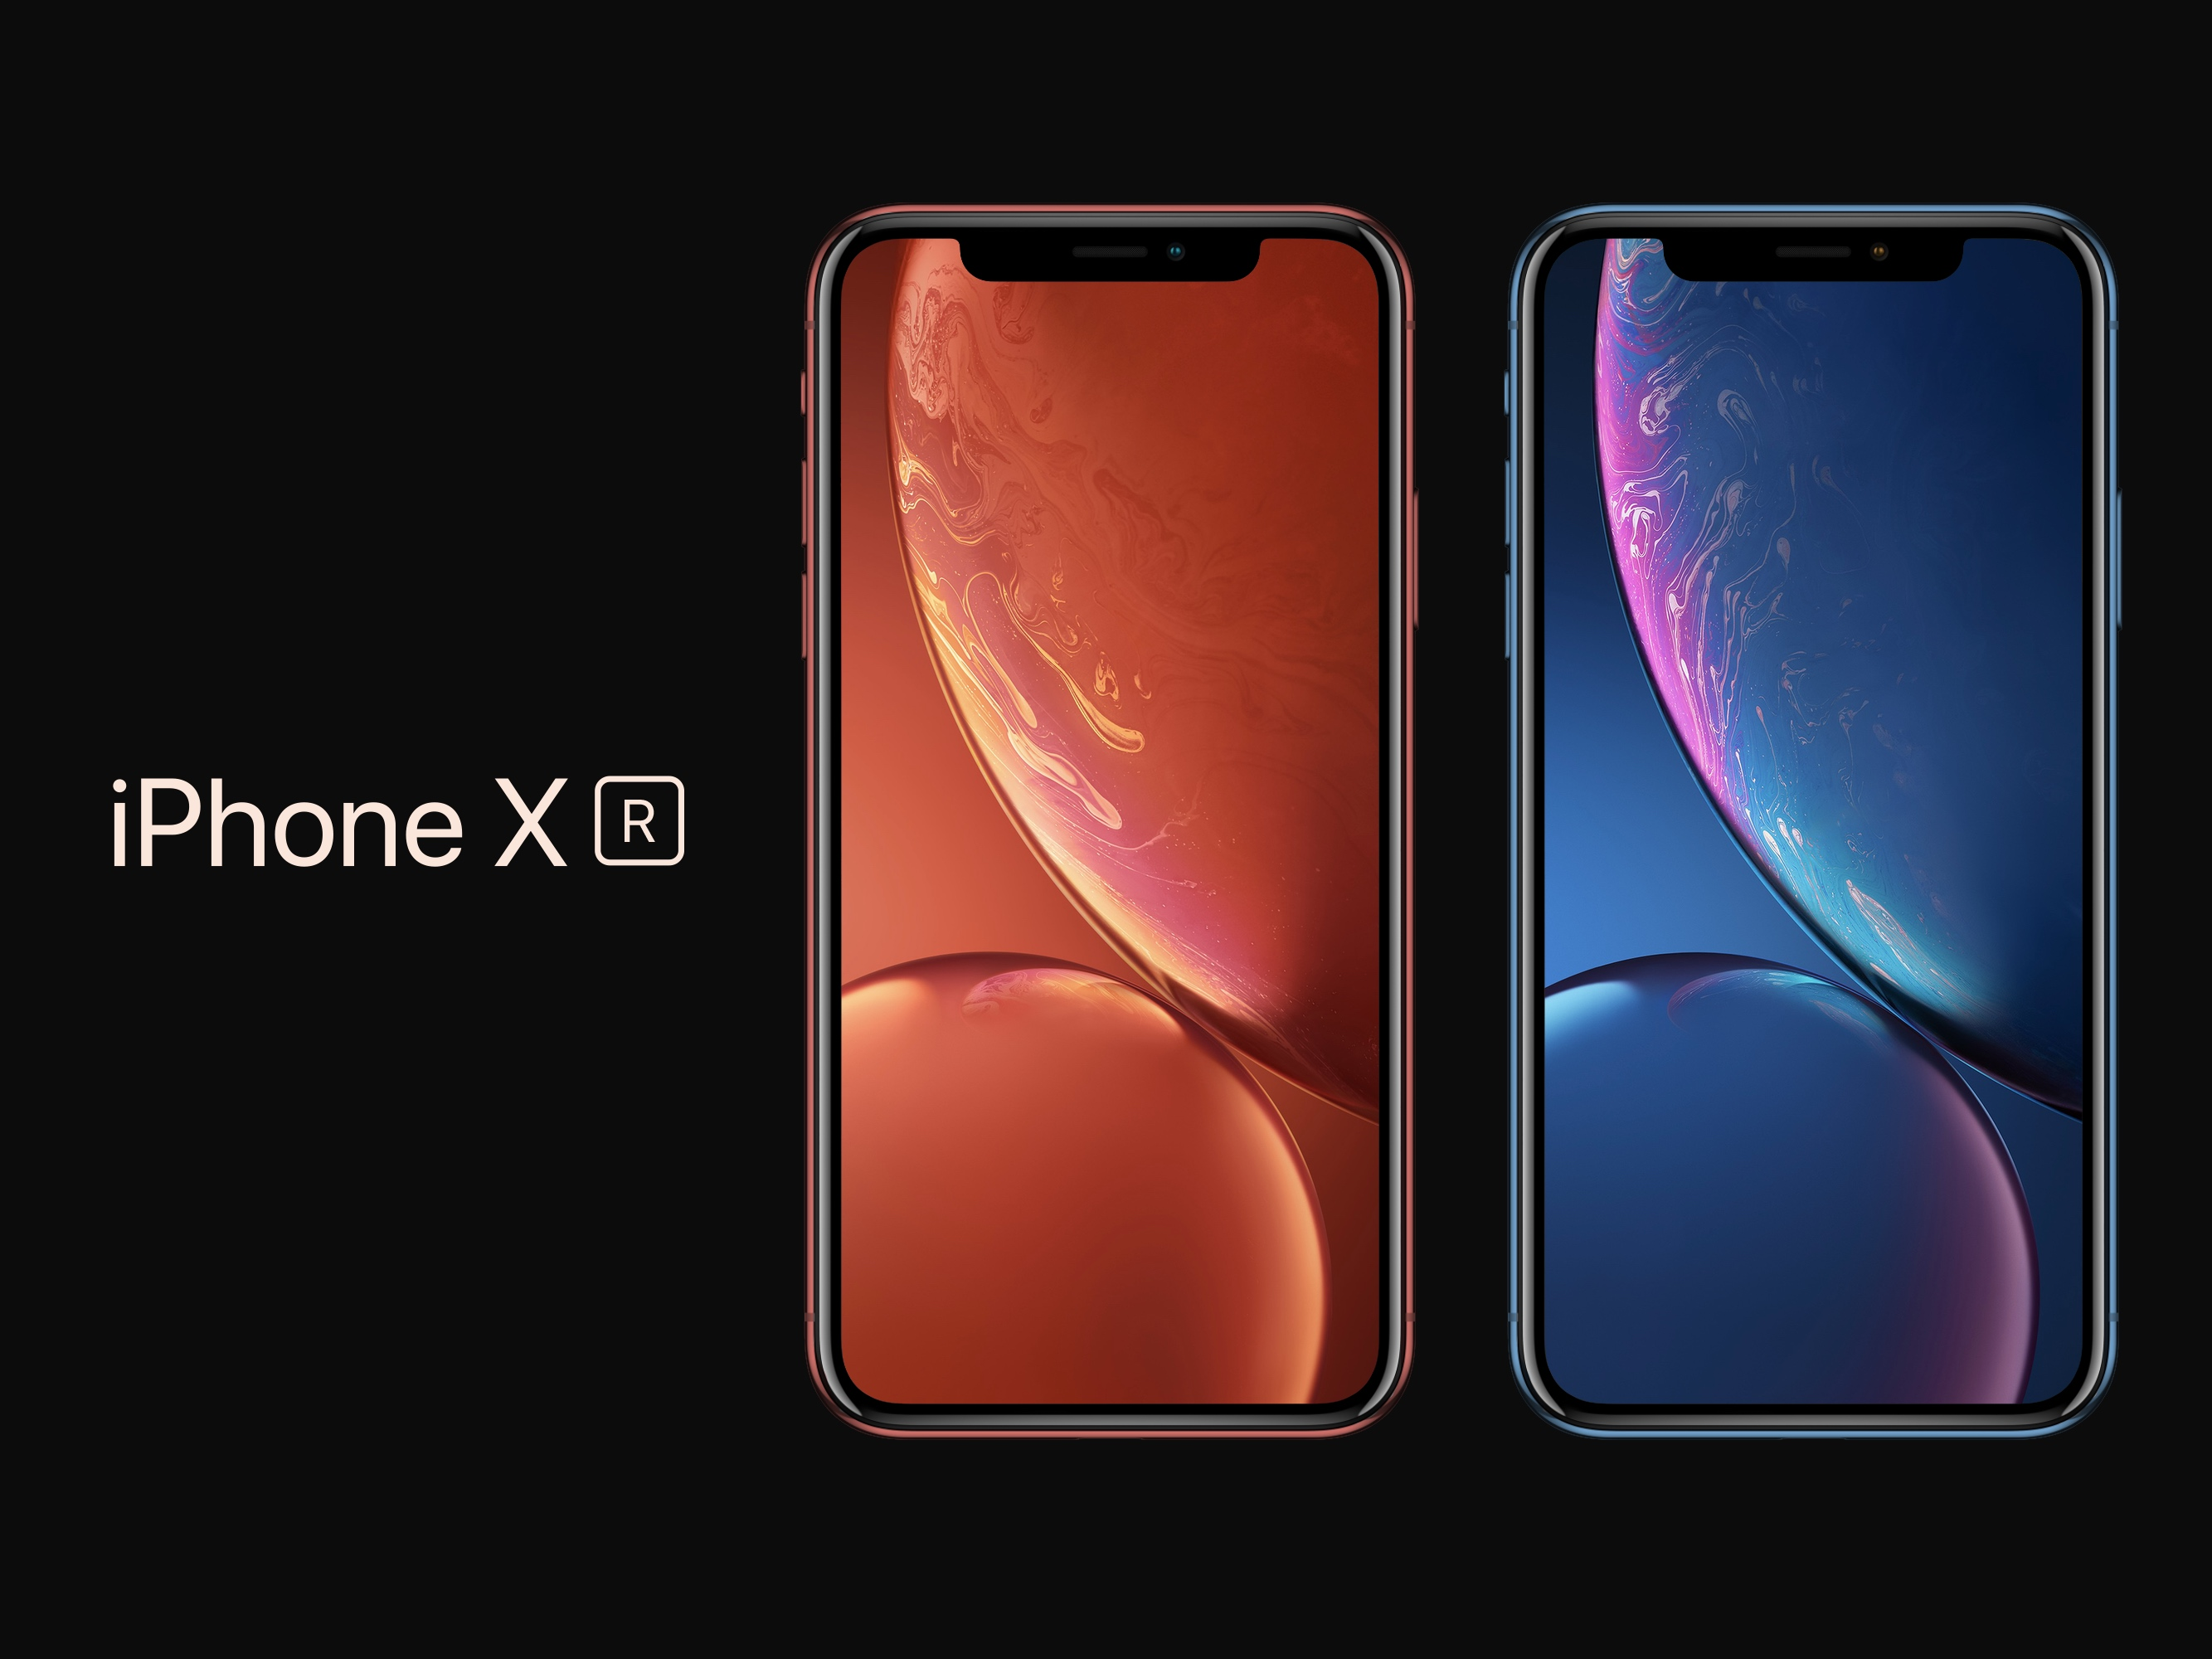 The new iPhone XR will skyrocket sales, not only during Holidays but, even in 2019